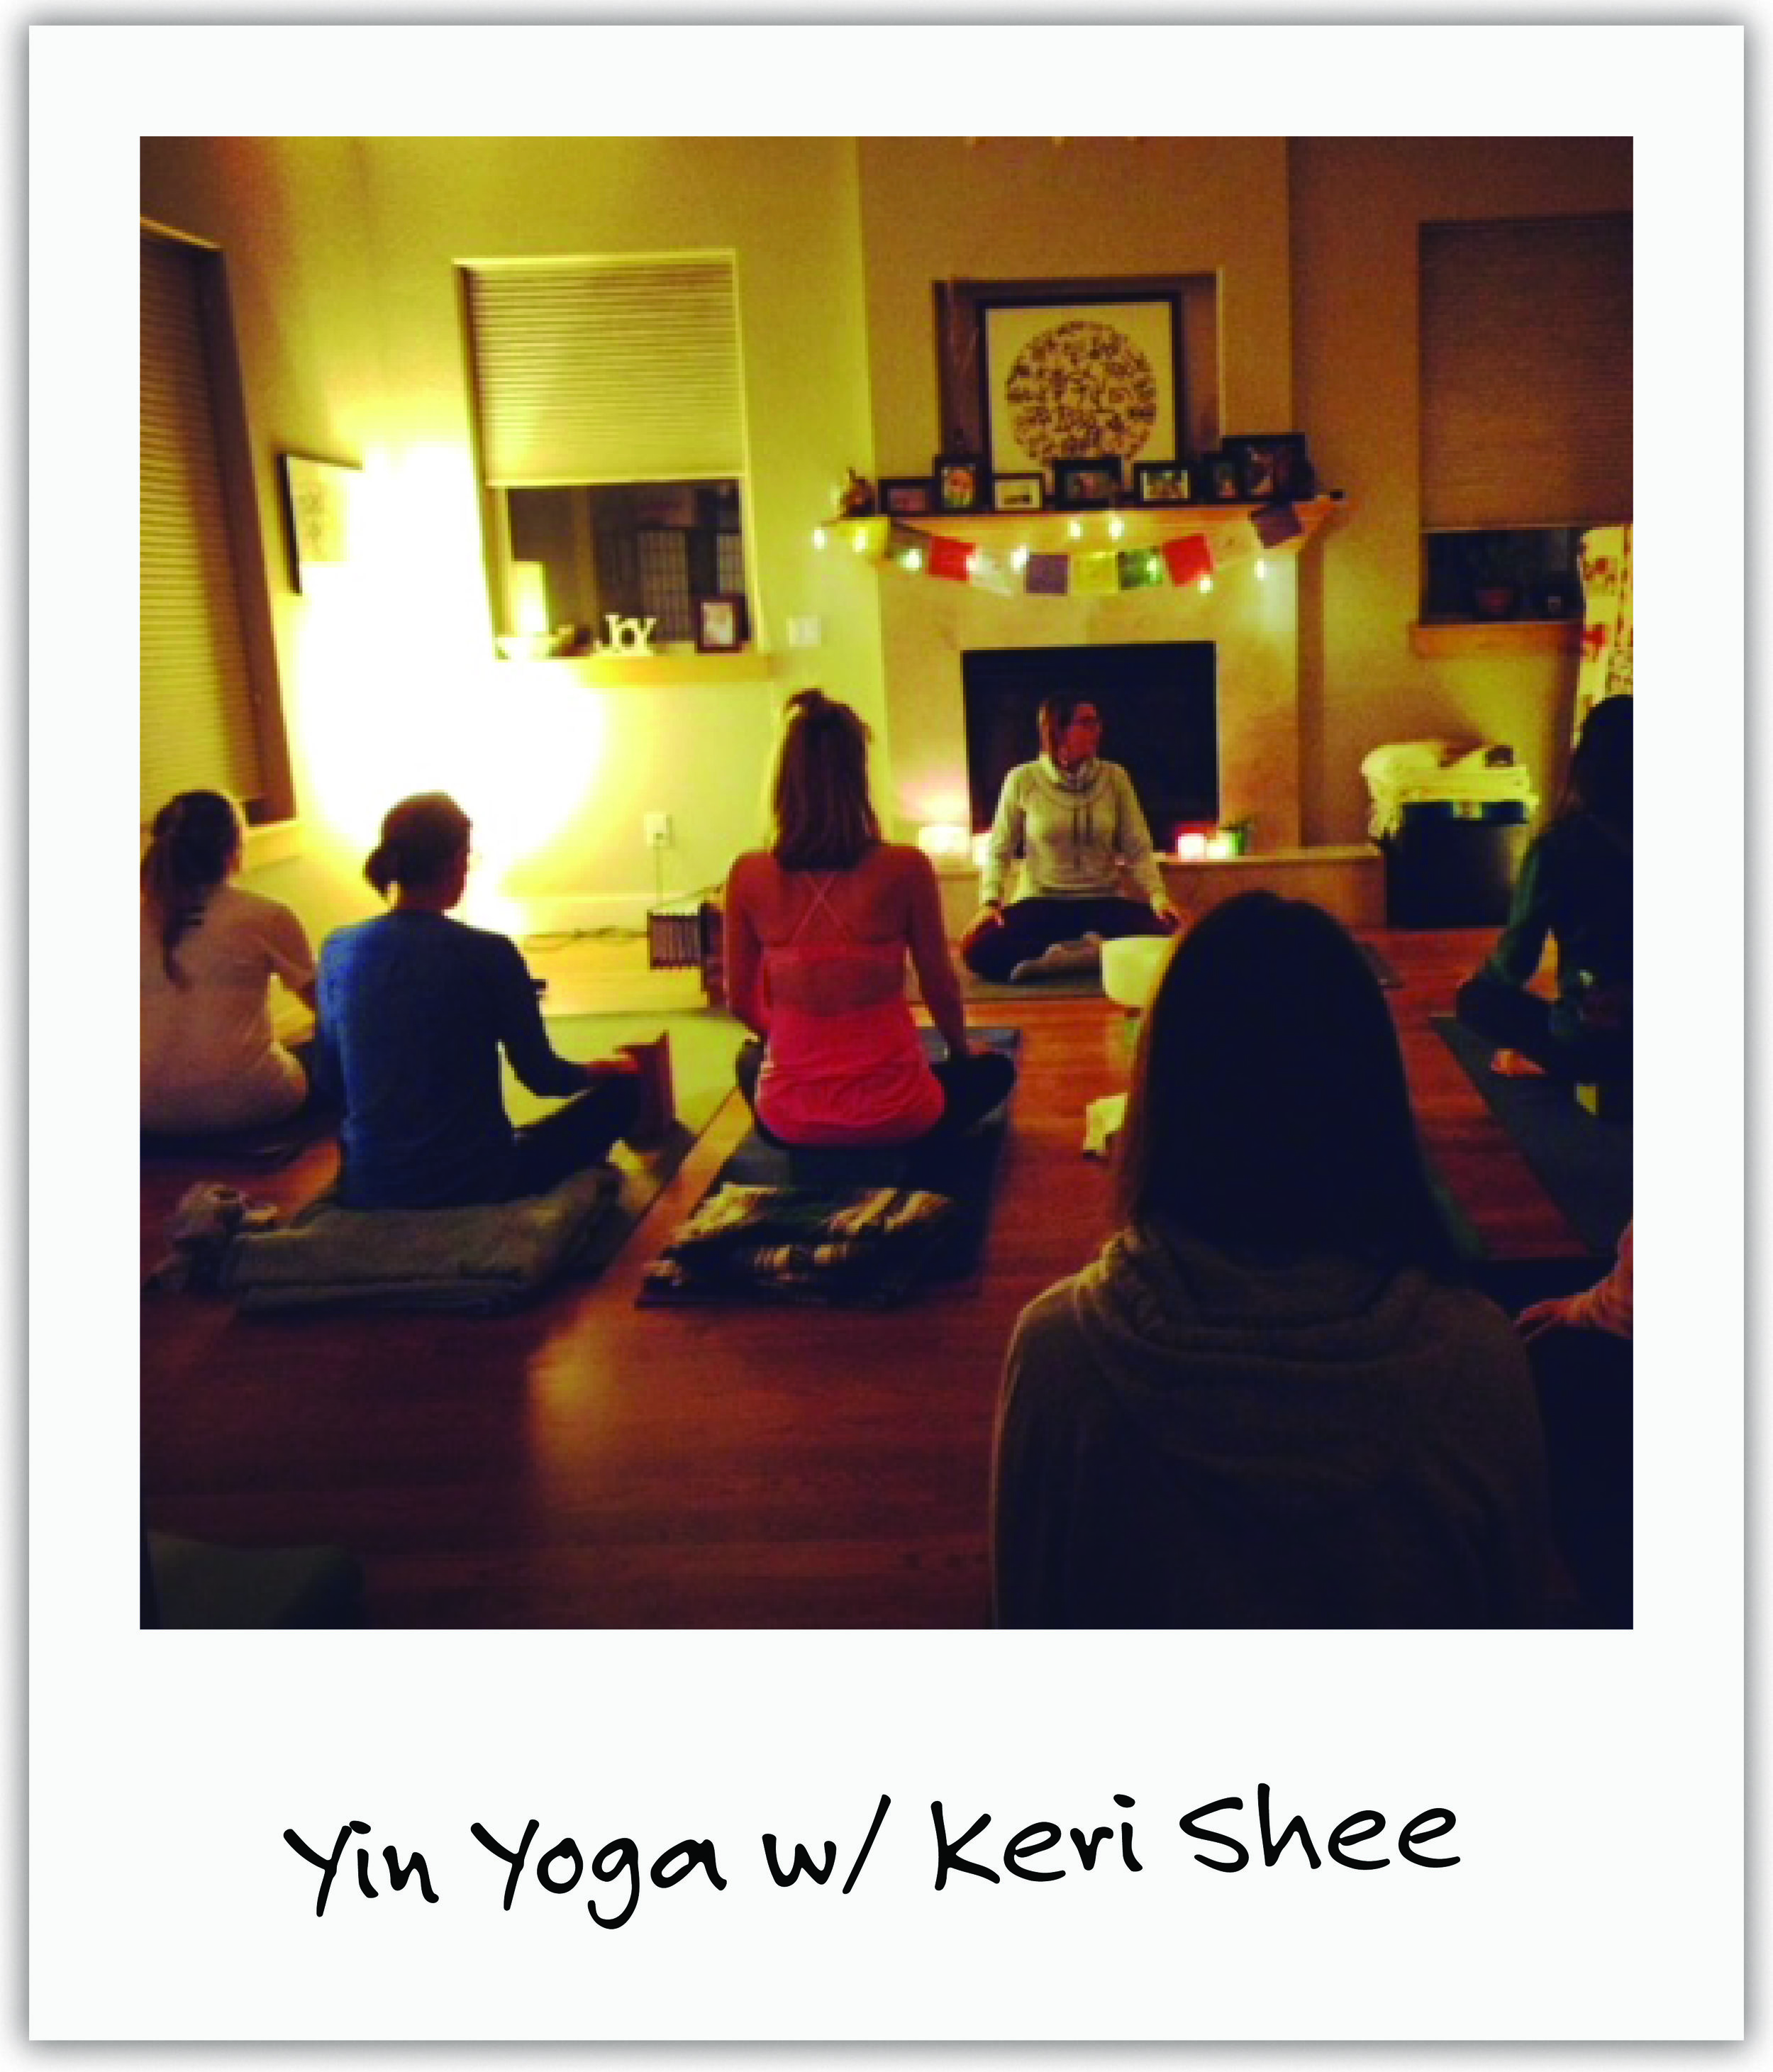 Keri, who has known Mila since birth, organizes regular Yin Yoga sessions at her home with much love in support of Mila.